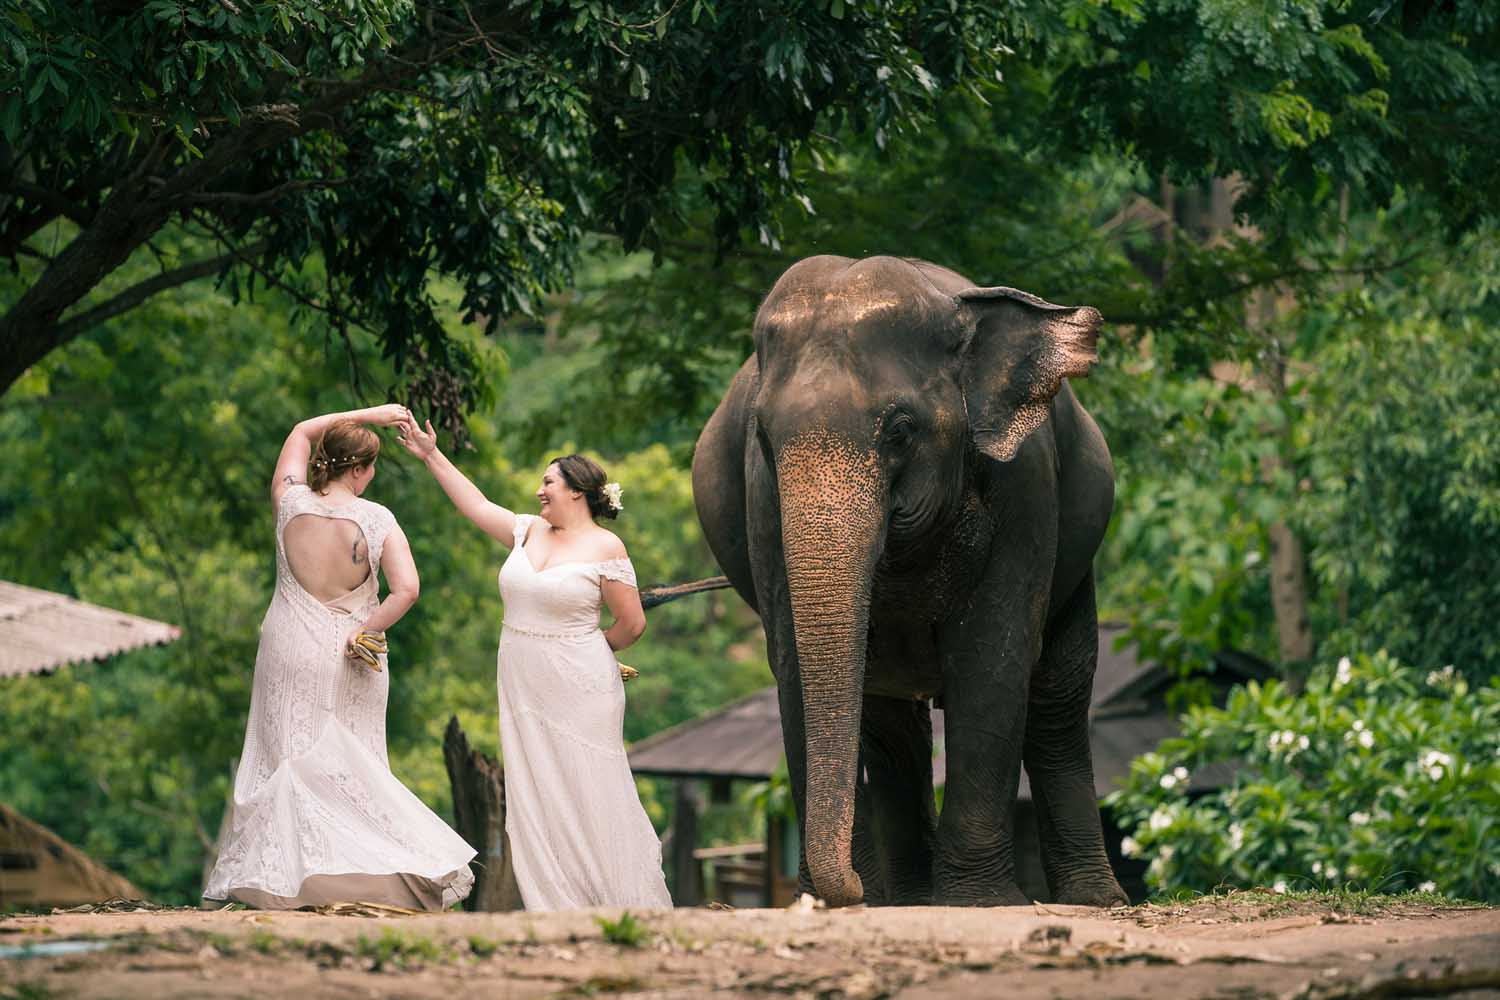 Dancing with an elephant